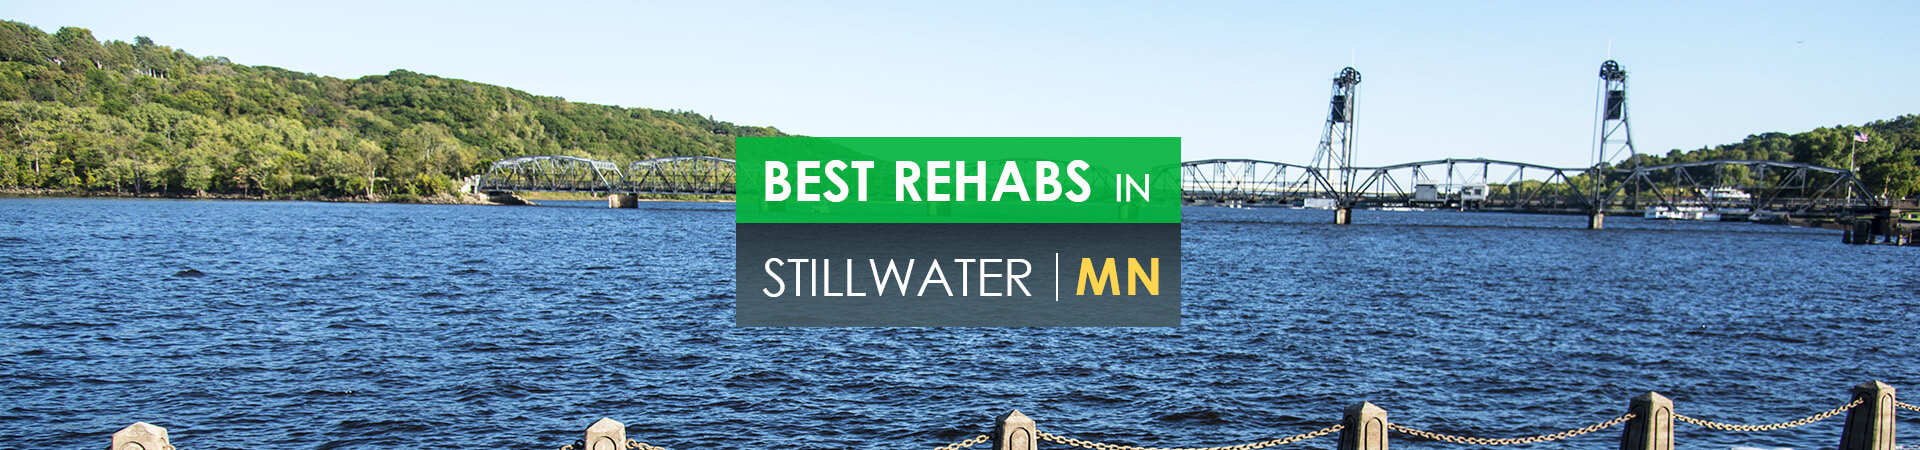 Best rehabs in Stillwater, MN